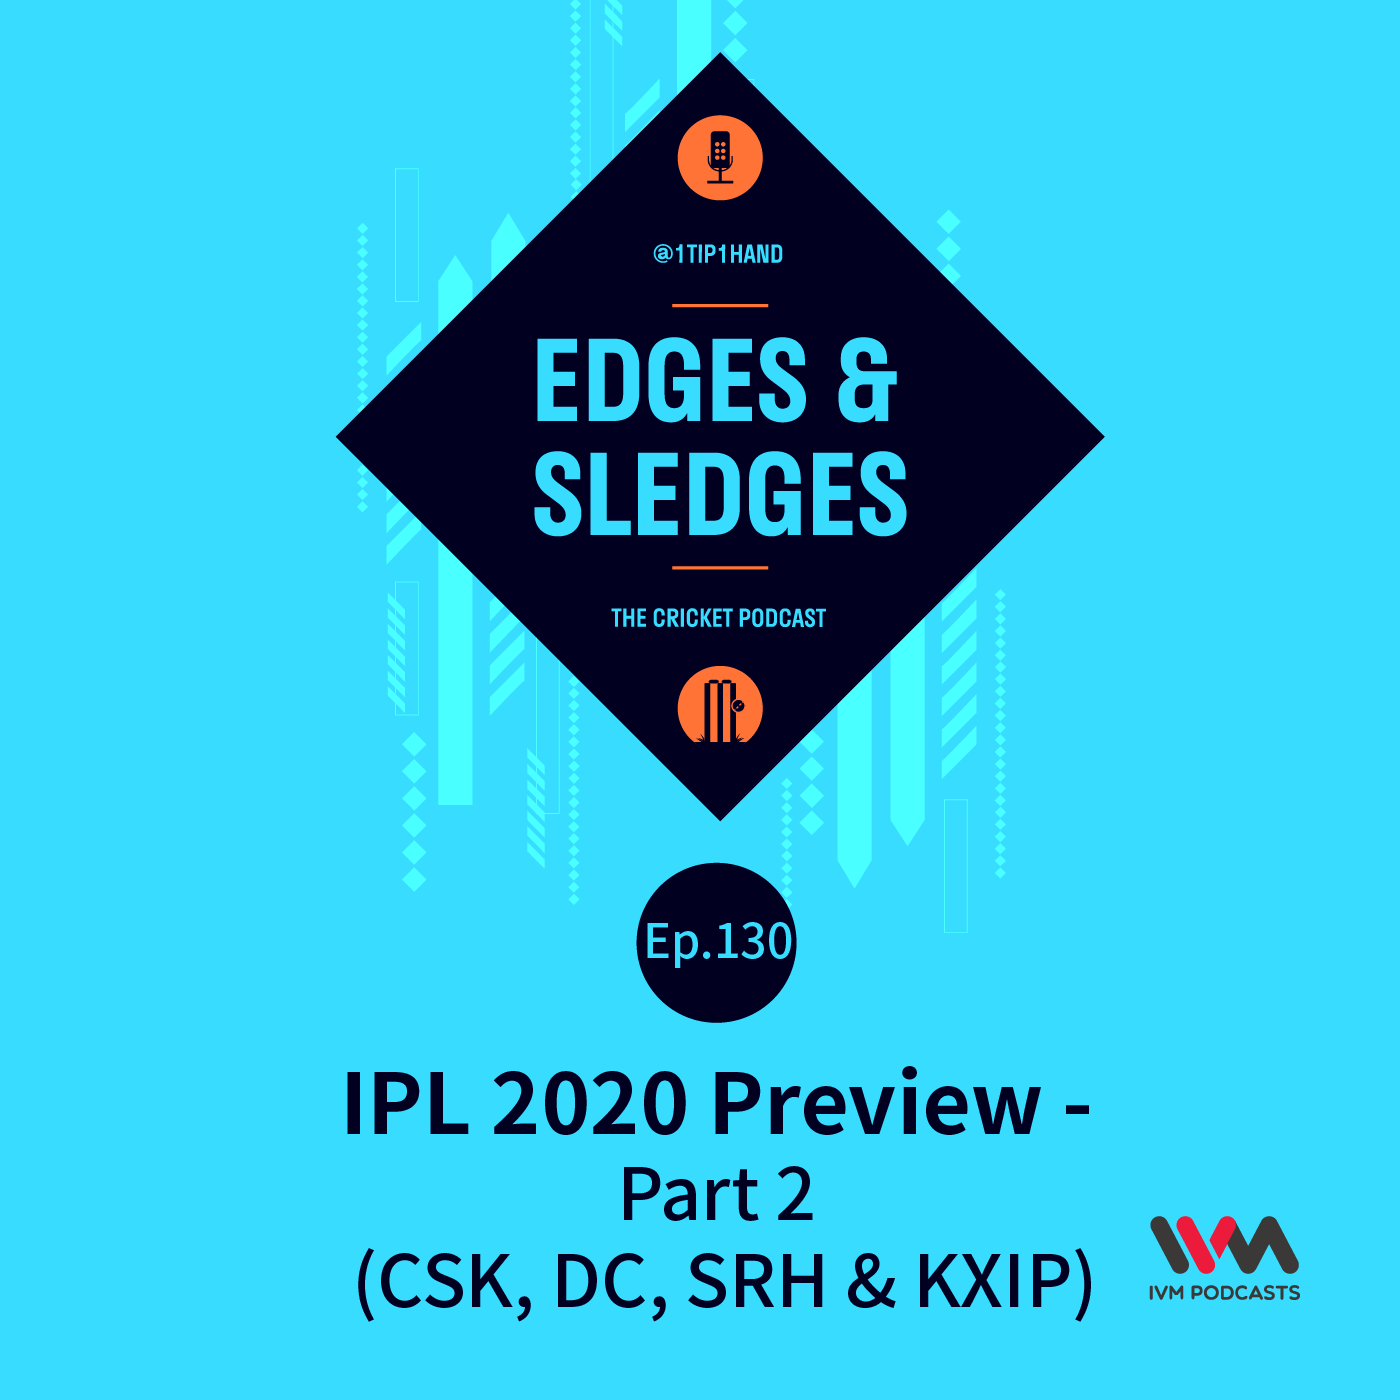 Ep. 130: IPL 2020 Preview - Part 2 (CSK, DC, SRH & KXIP)